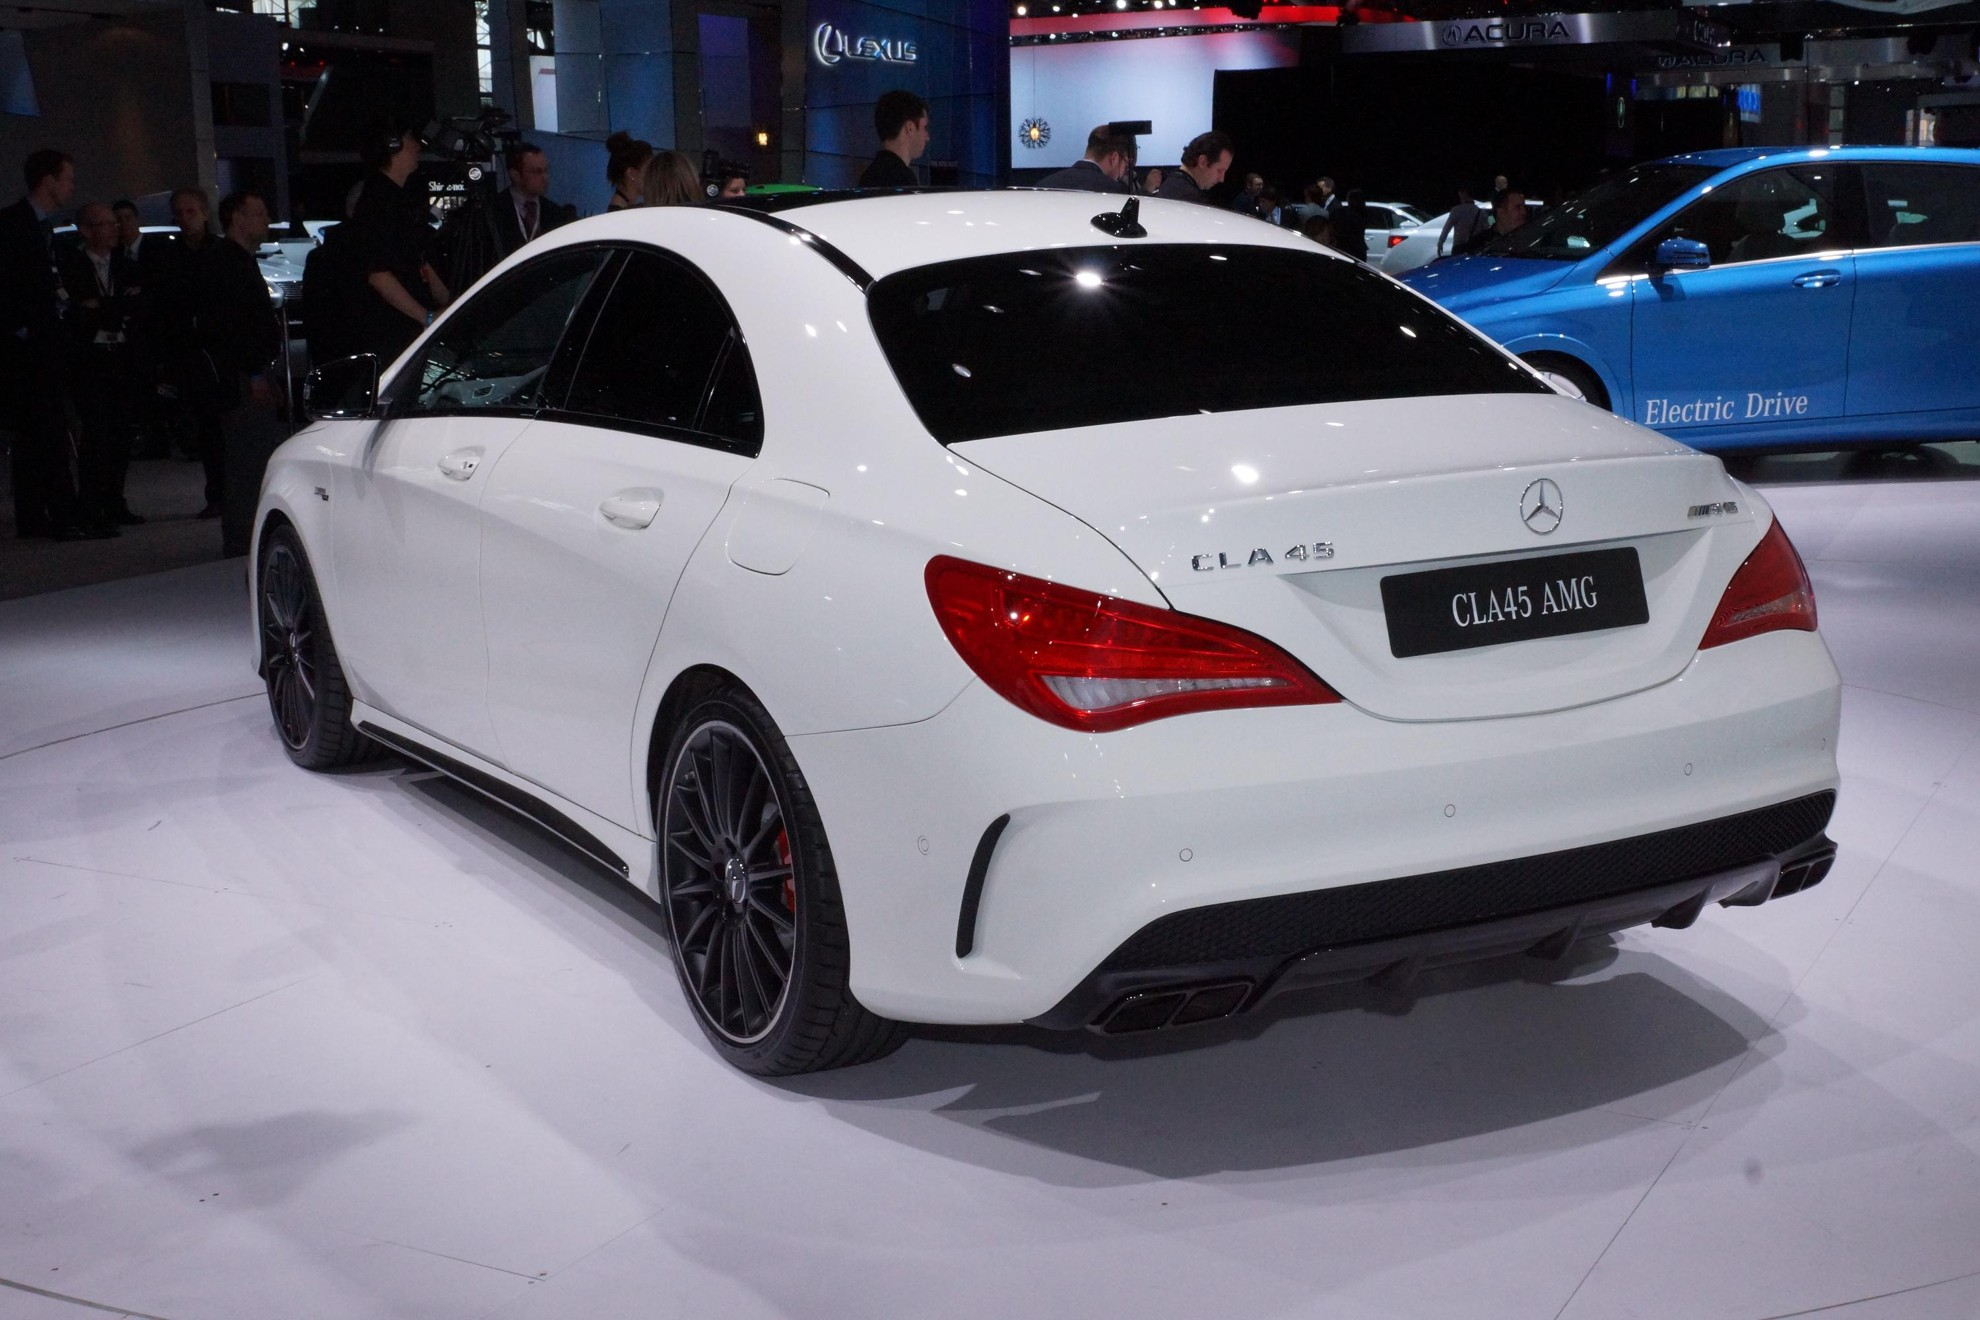 Images: Mercedes-Benz CLA 45 AMG New York Auto Show 2013